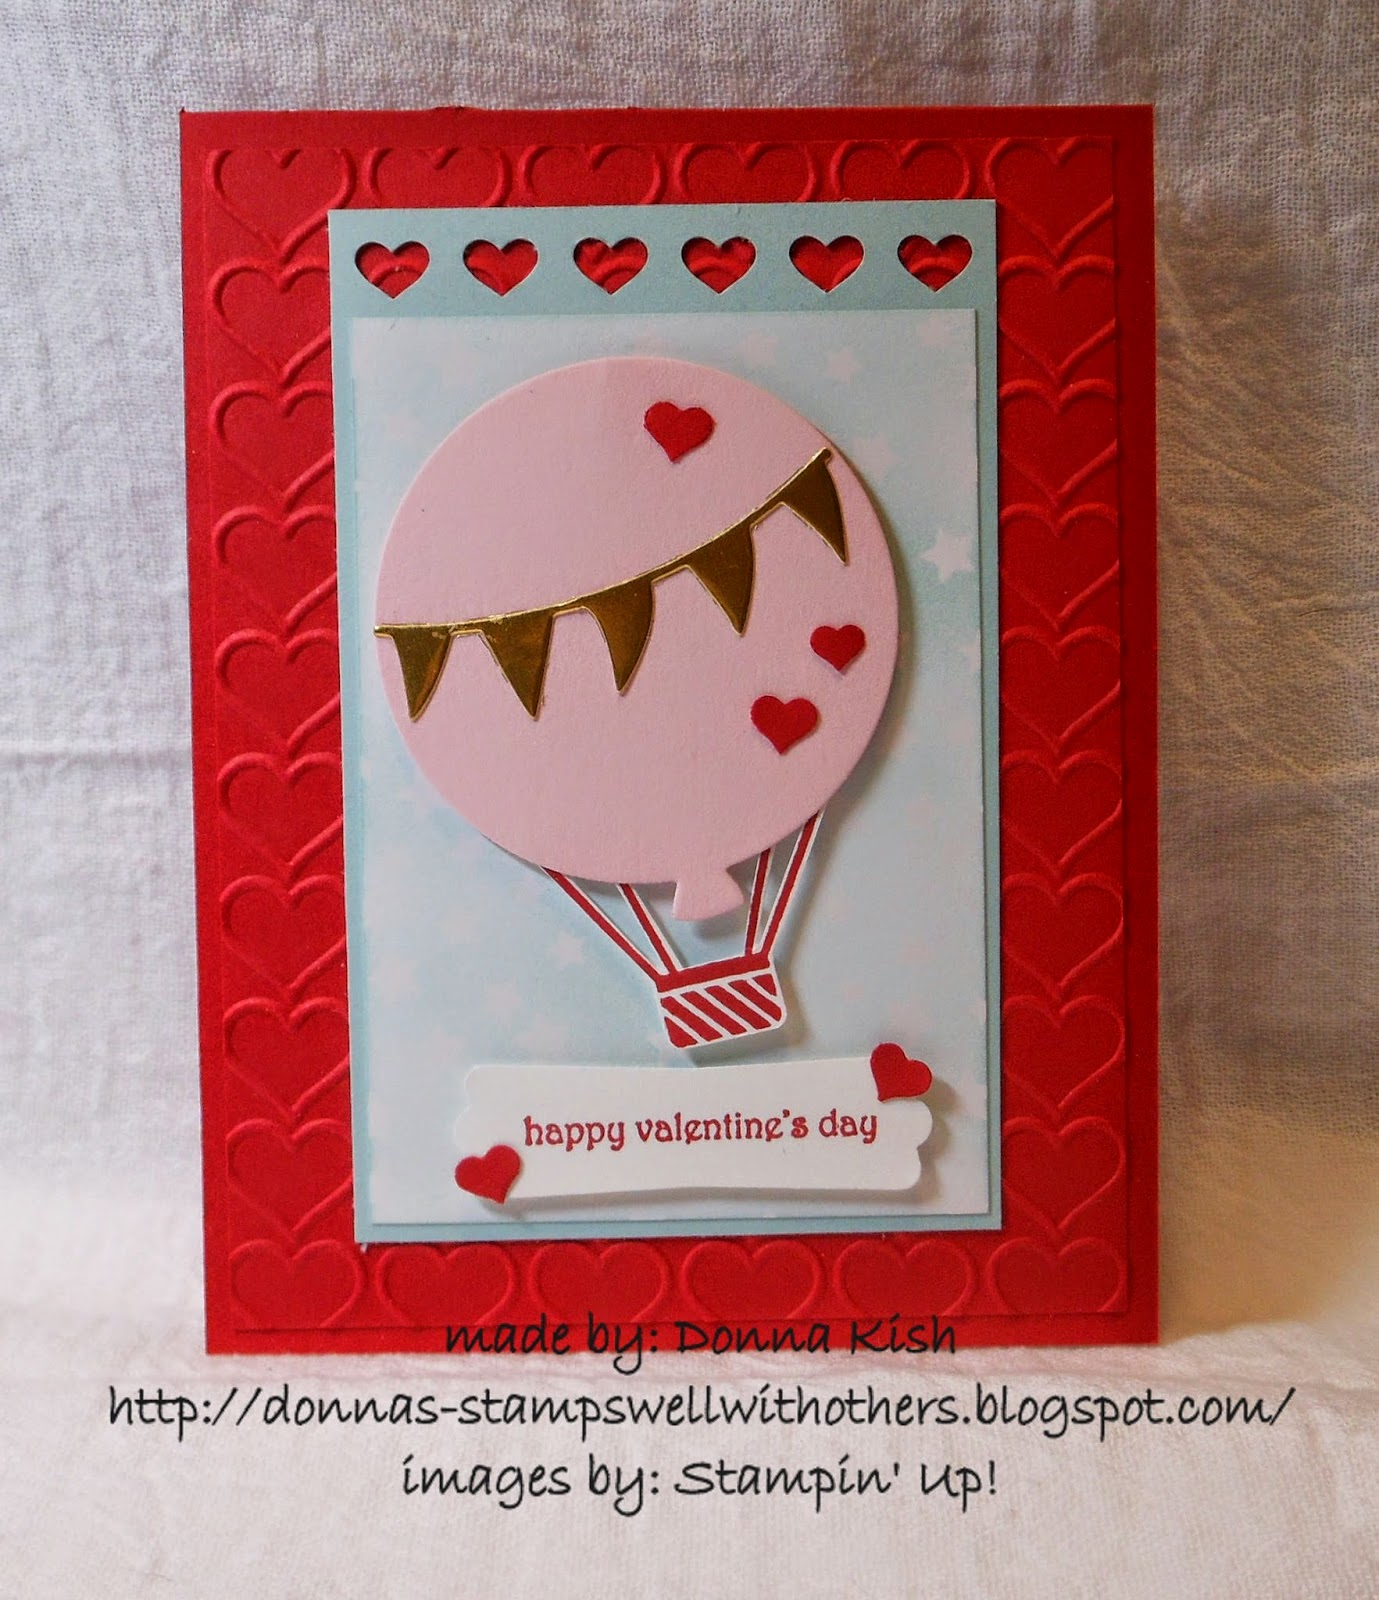 http://donnas-stampswellwithothers.blogspot.com/2015/01/celebrate-valentines.html